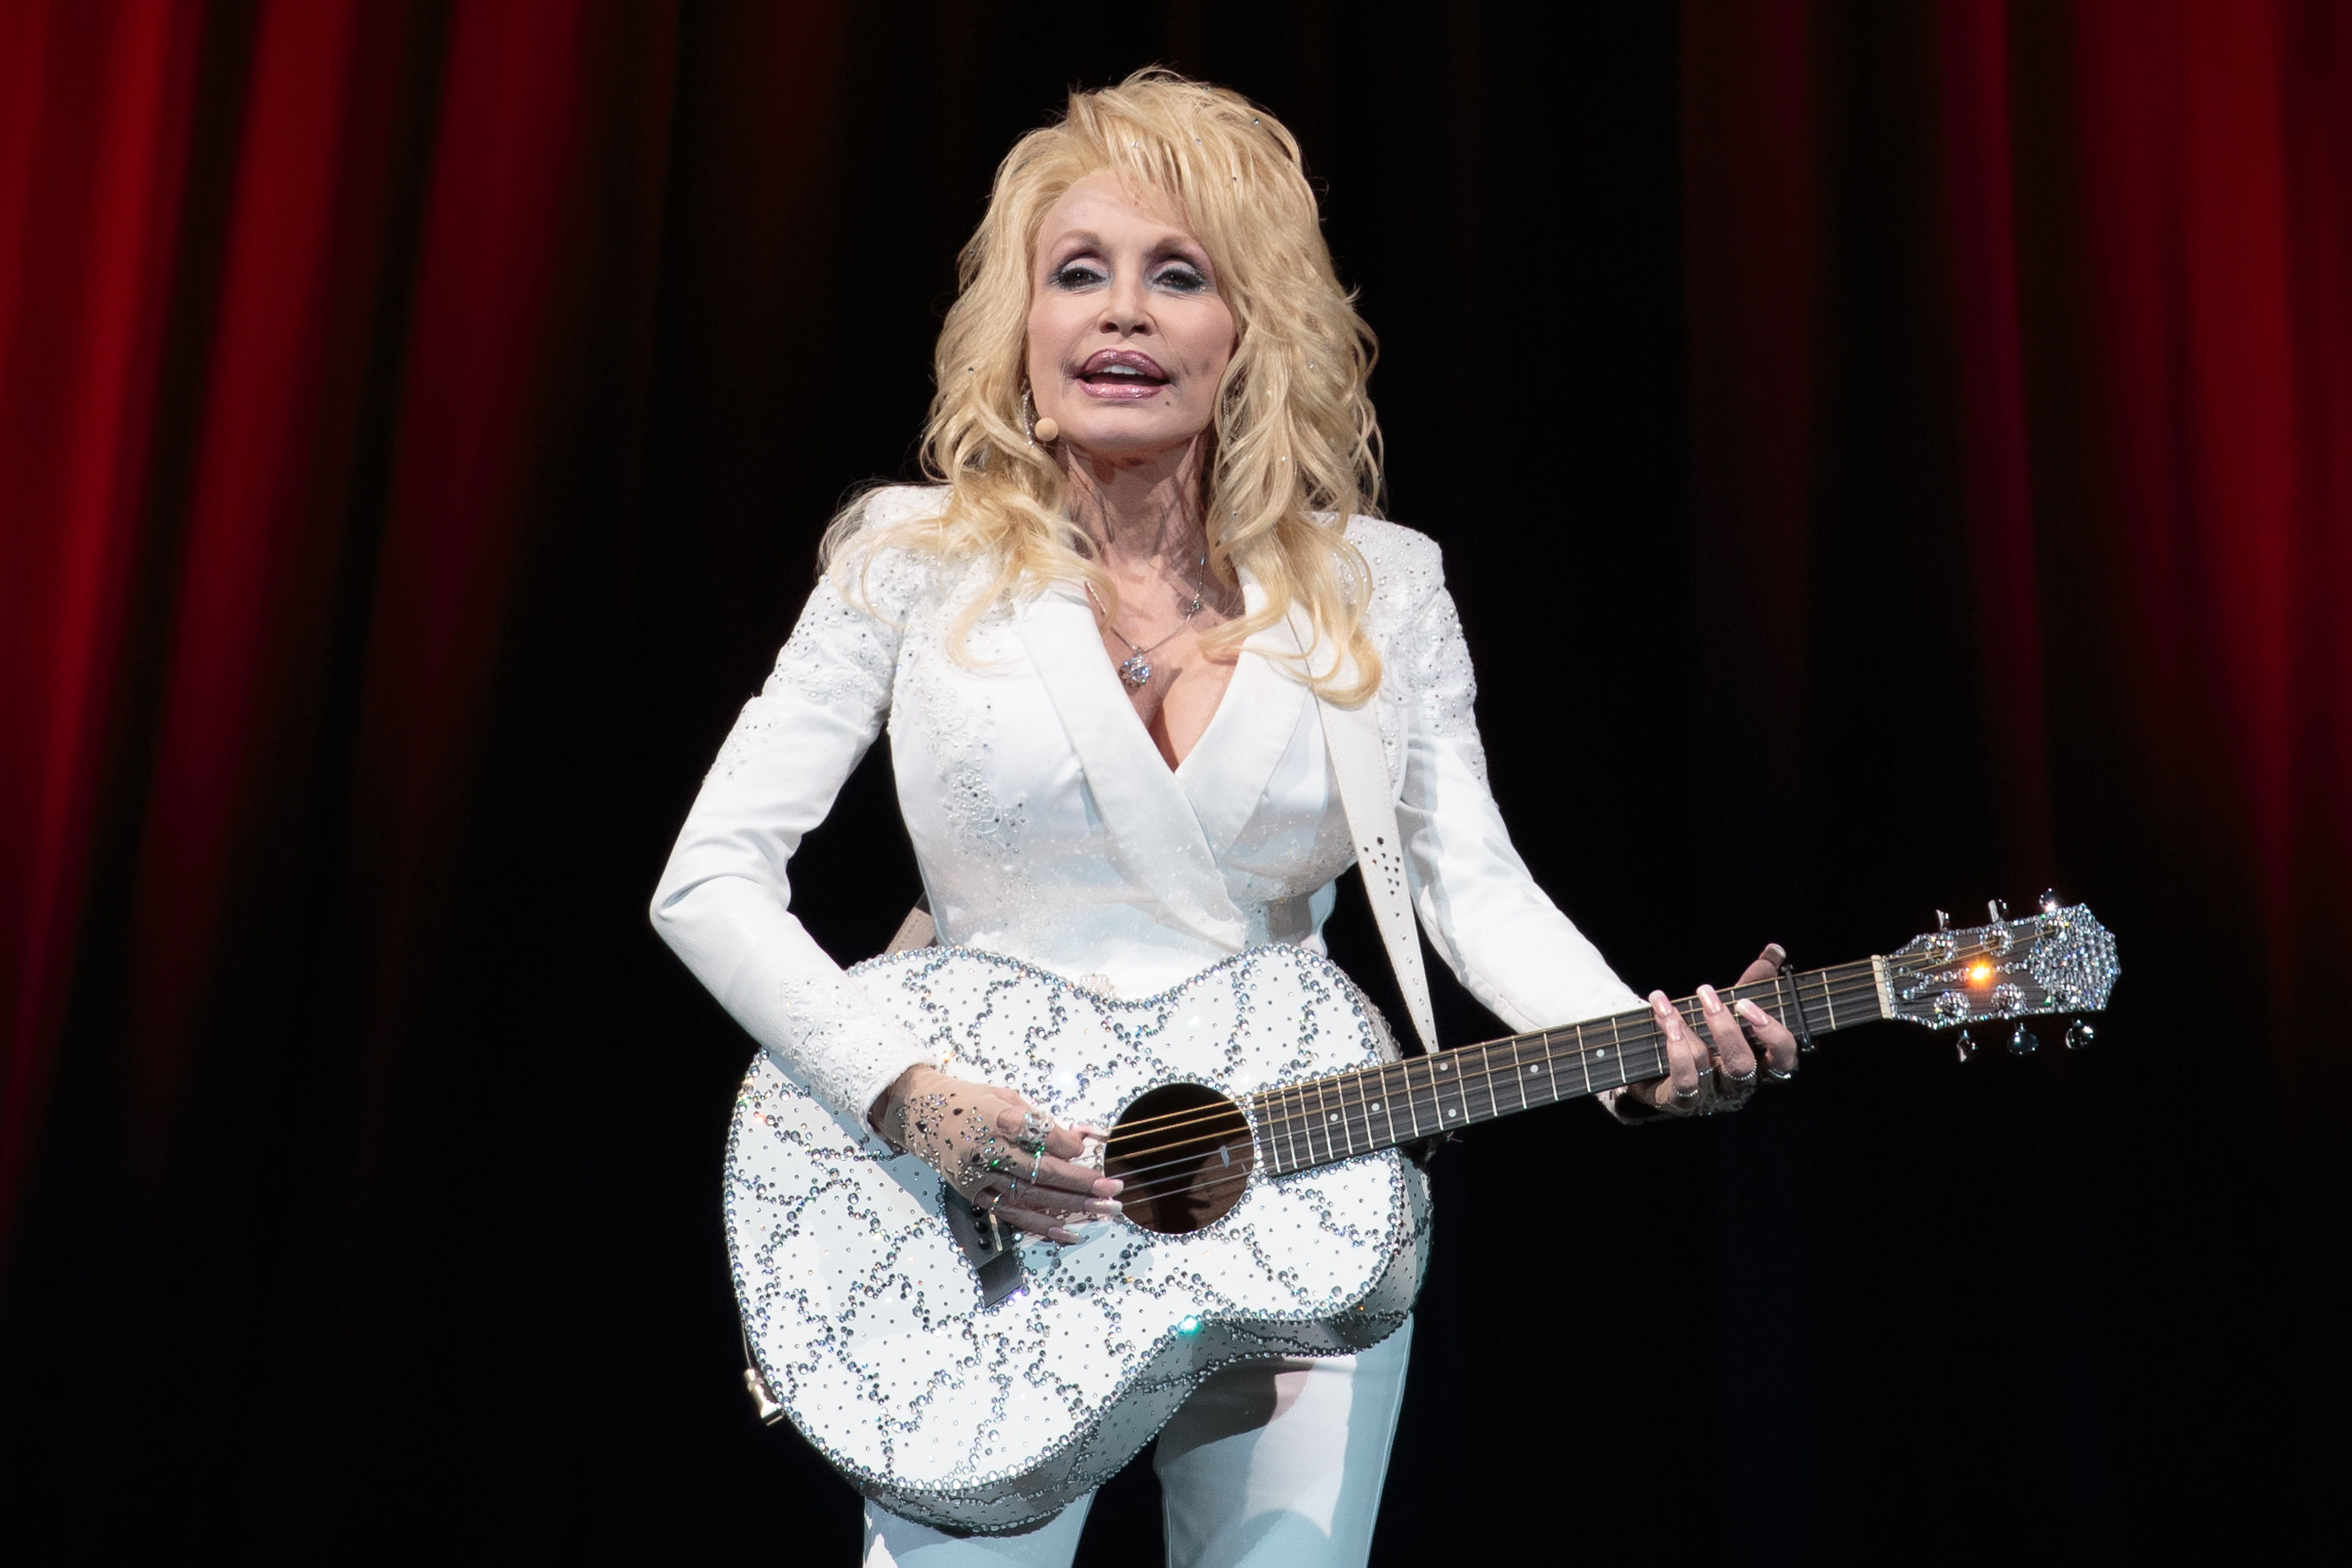 Dolly Parton Raised $9 Million for Tennessee Wildfire Victims